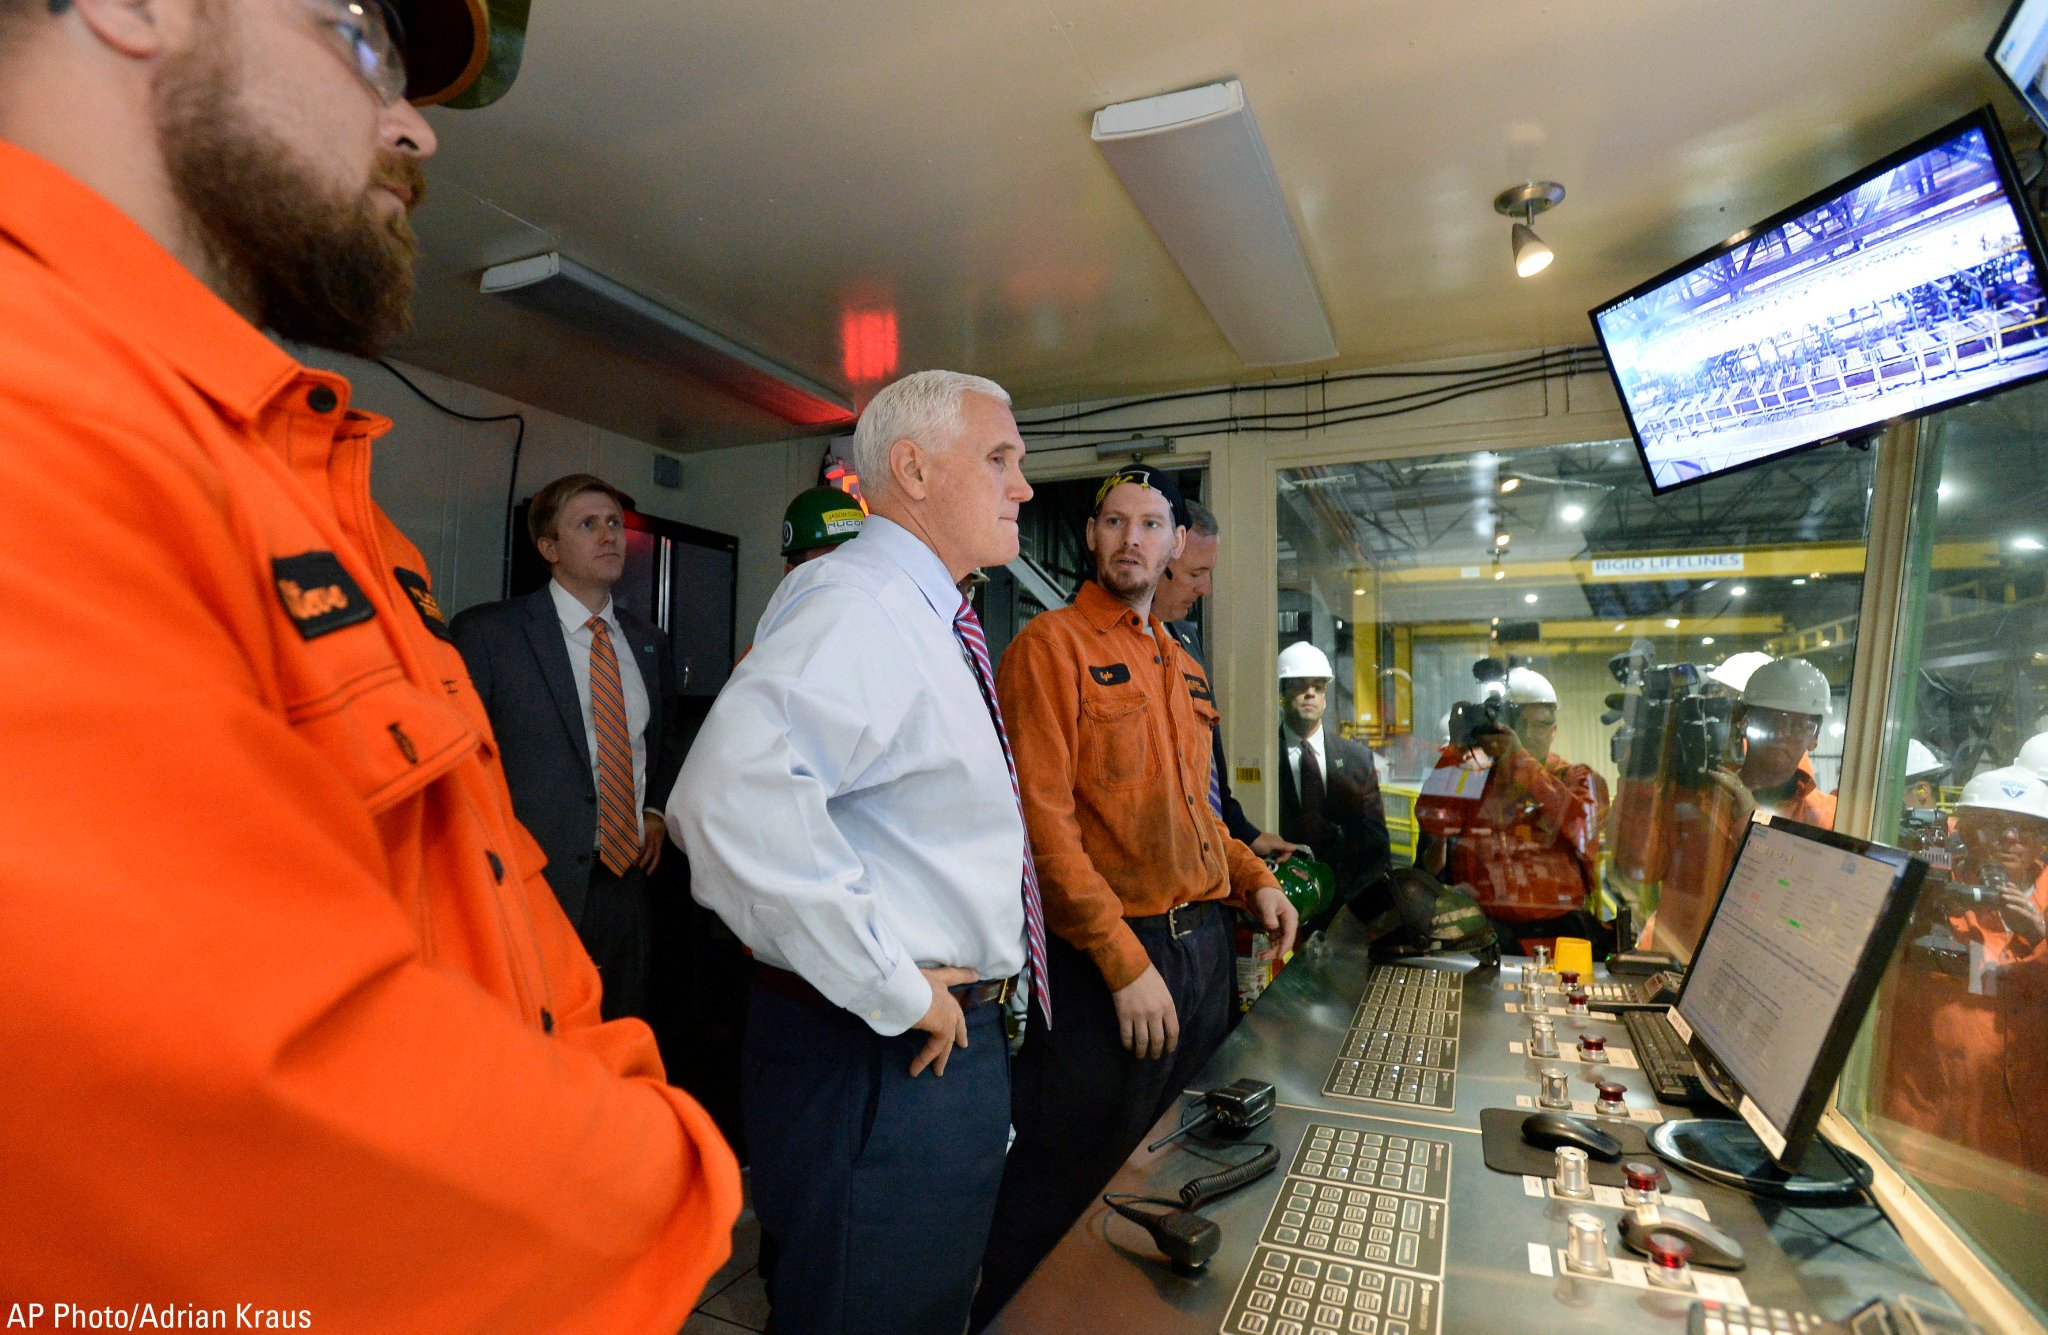 .@VP Mike Pence tours the Nucor Steel Auburn Inc. facility in Auburn, New York on Tuesday. https://t.co/VaEOkAeKyY